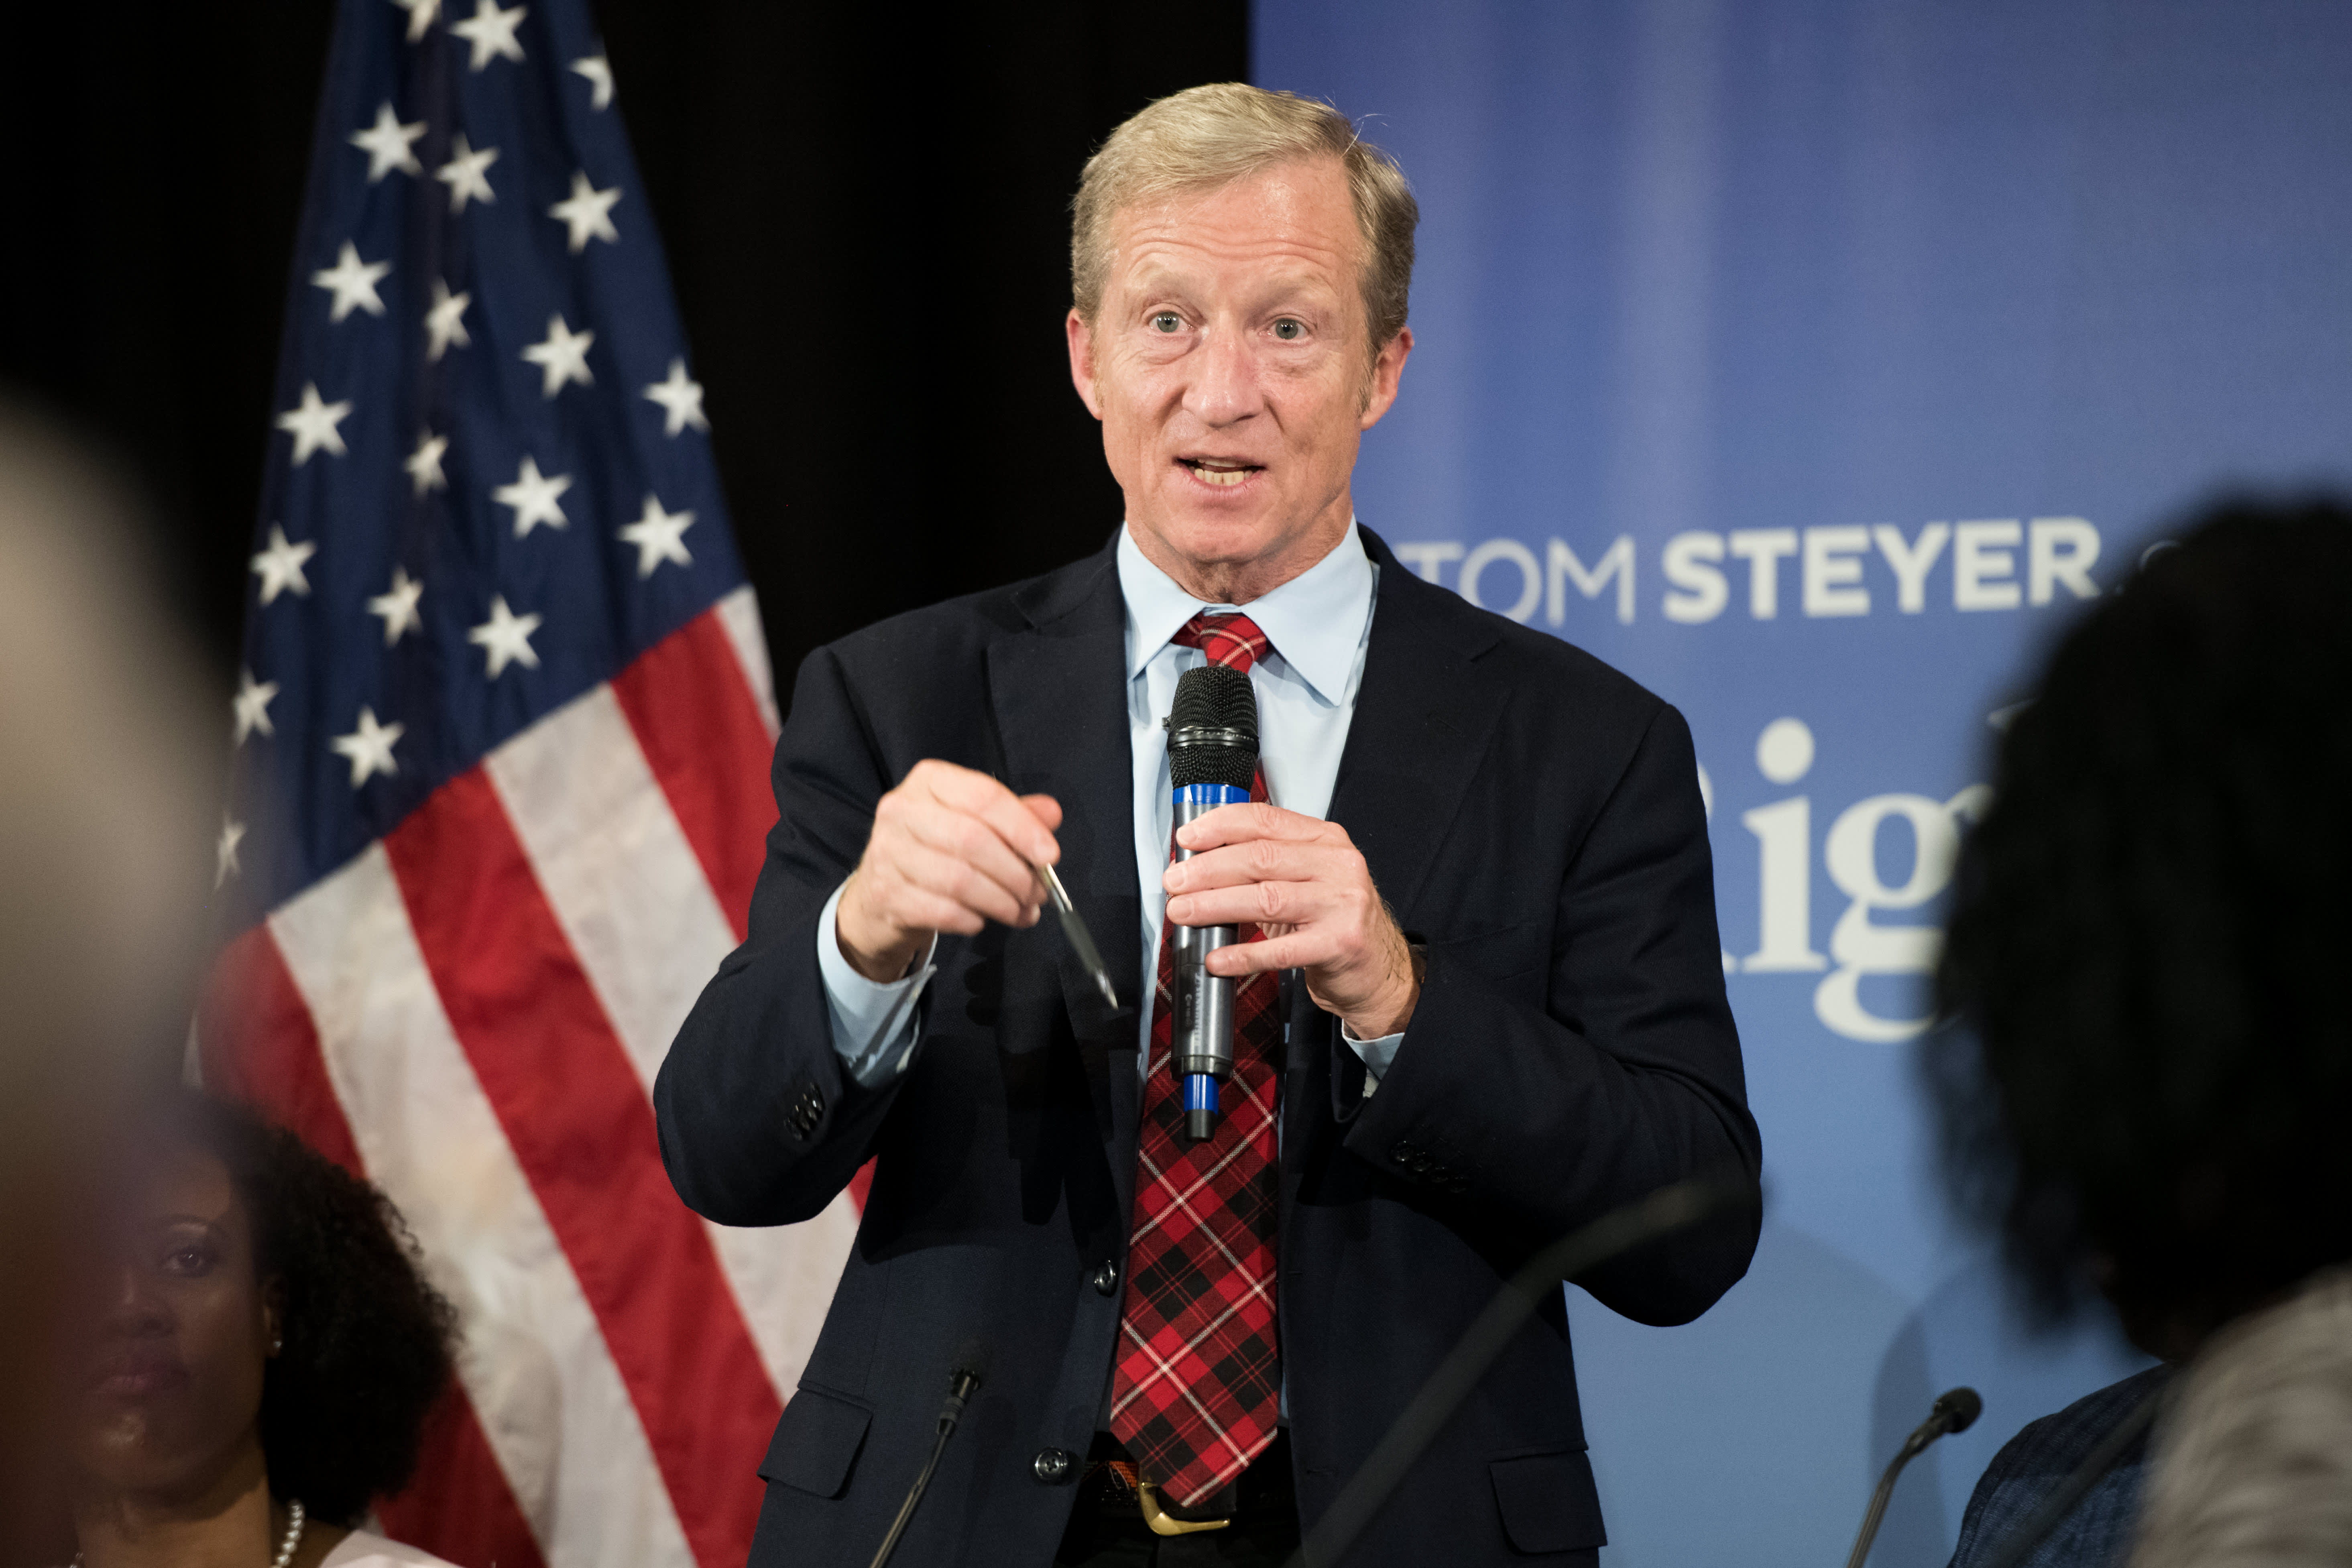 Tom Steyer 2020 Presidential Candidate Beat Trump Official Campaign Placard